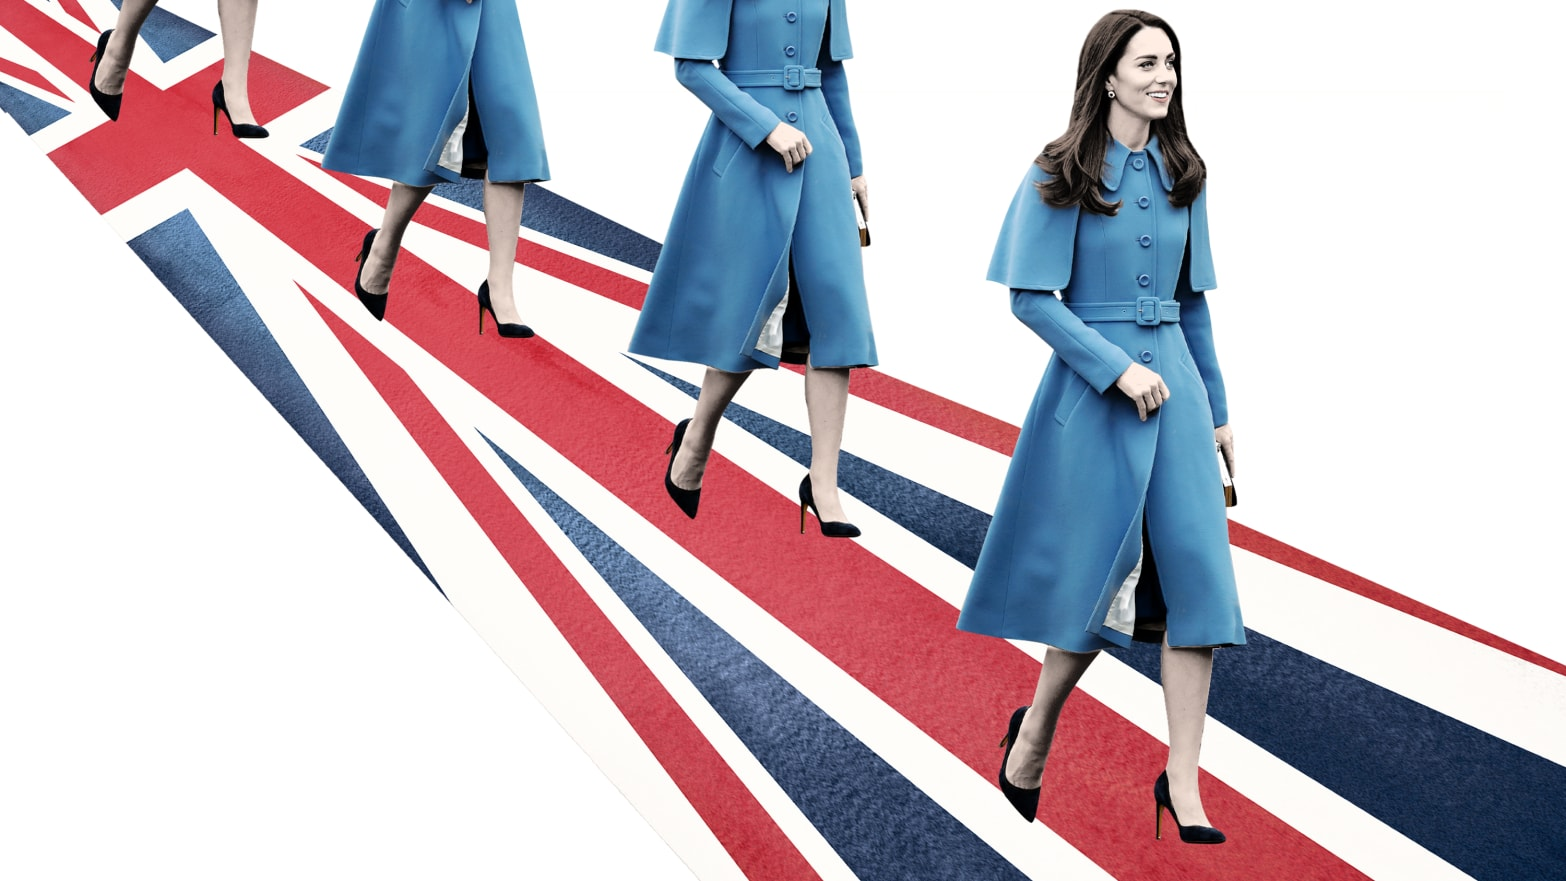 a3440a0ad304 Kate Middleton Discovers Trousers—and a Fresh Sense of Style